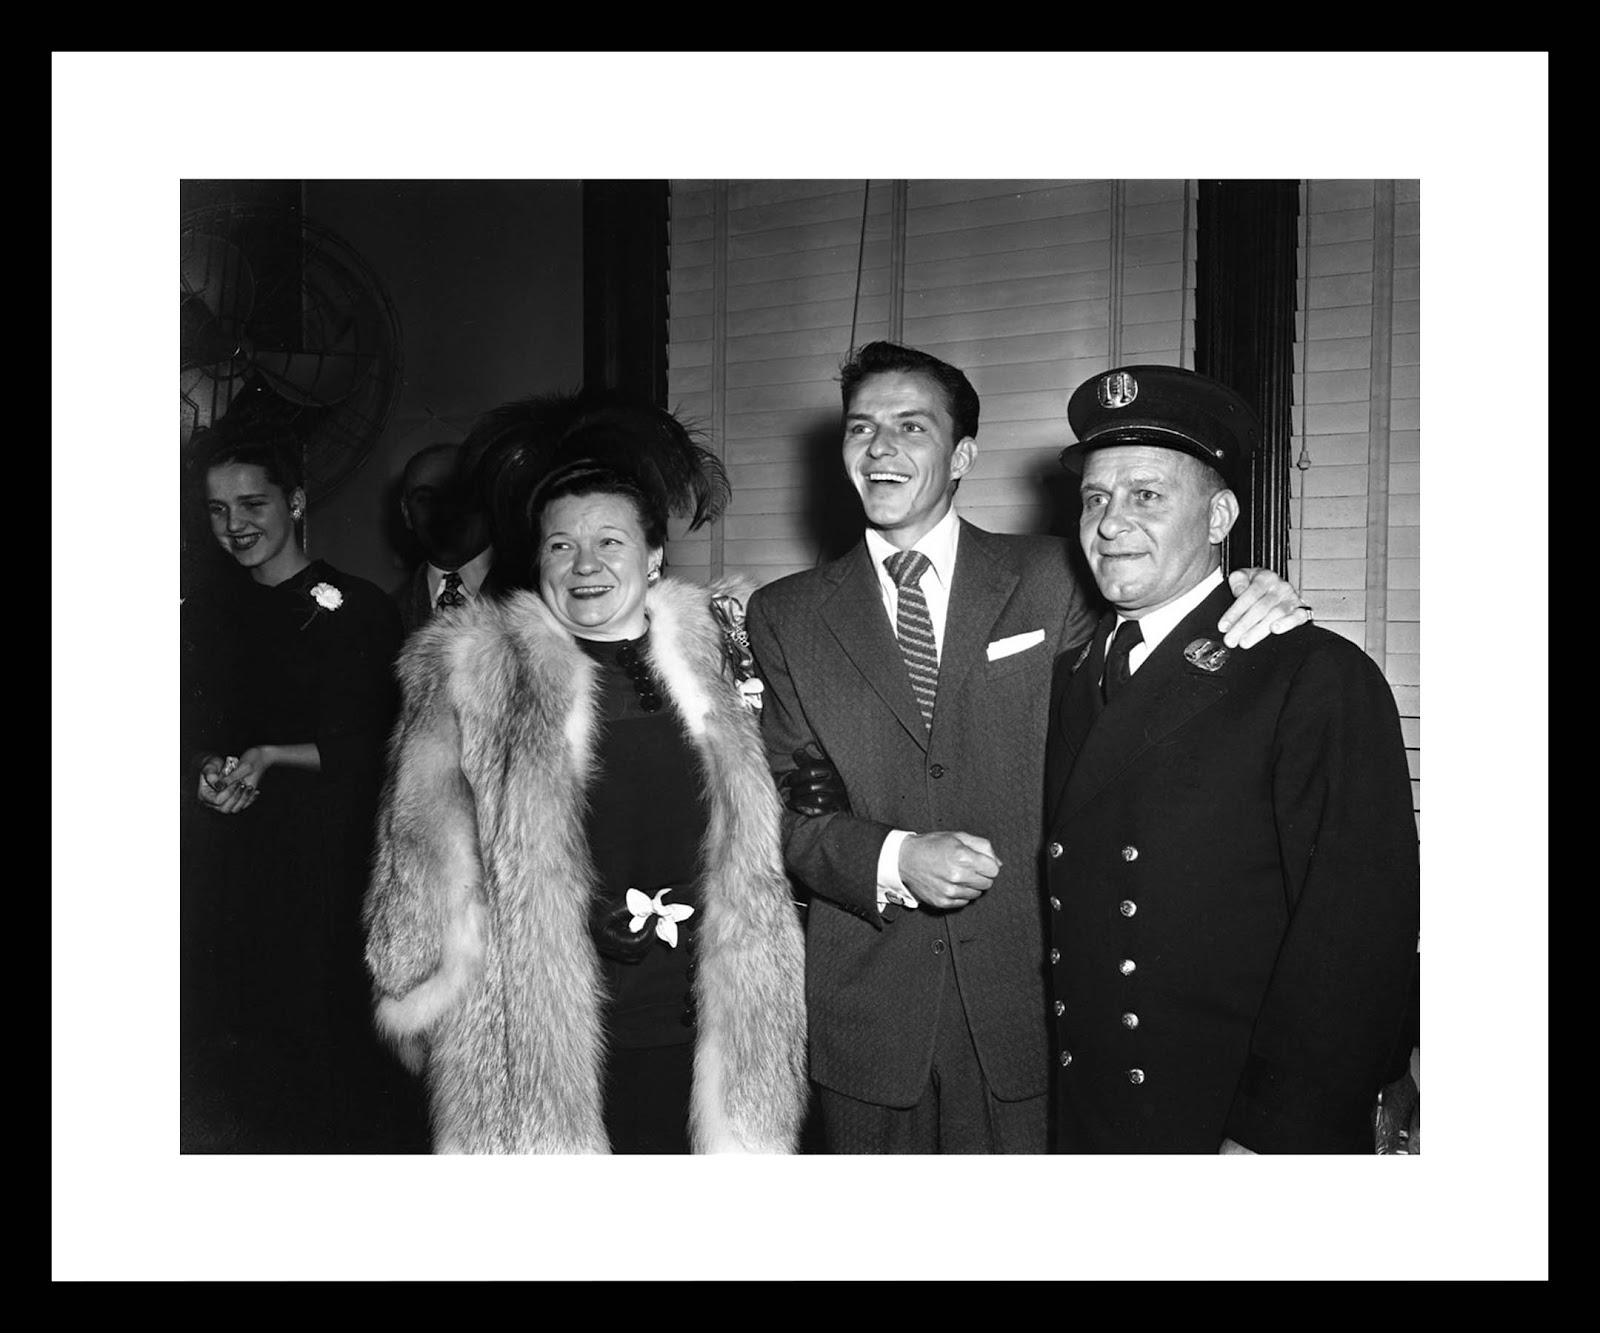 bk0018_-_frank_sinatra_with_his_parents_resized.jpeg